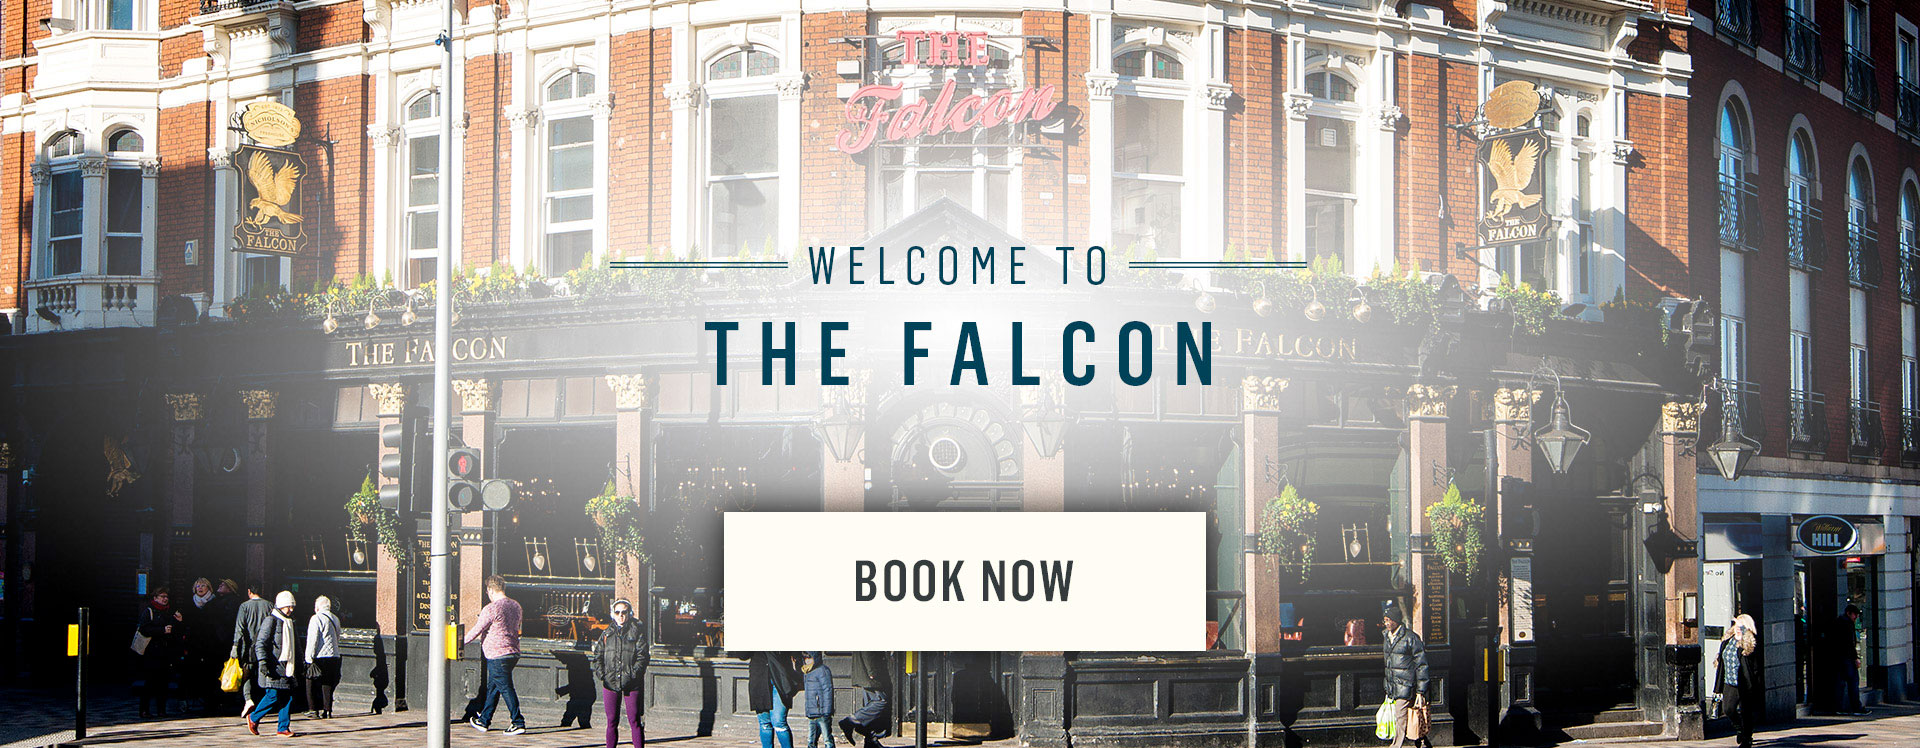 Welcome to The Falcon - Book Now